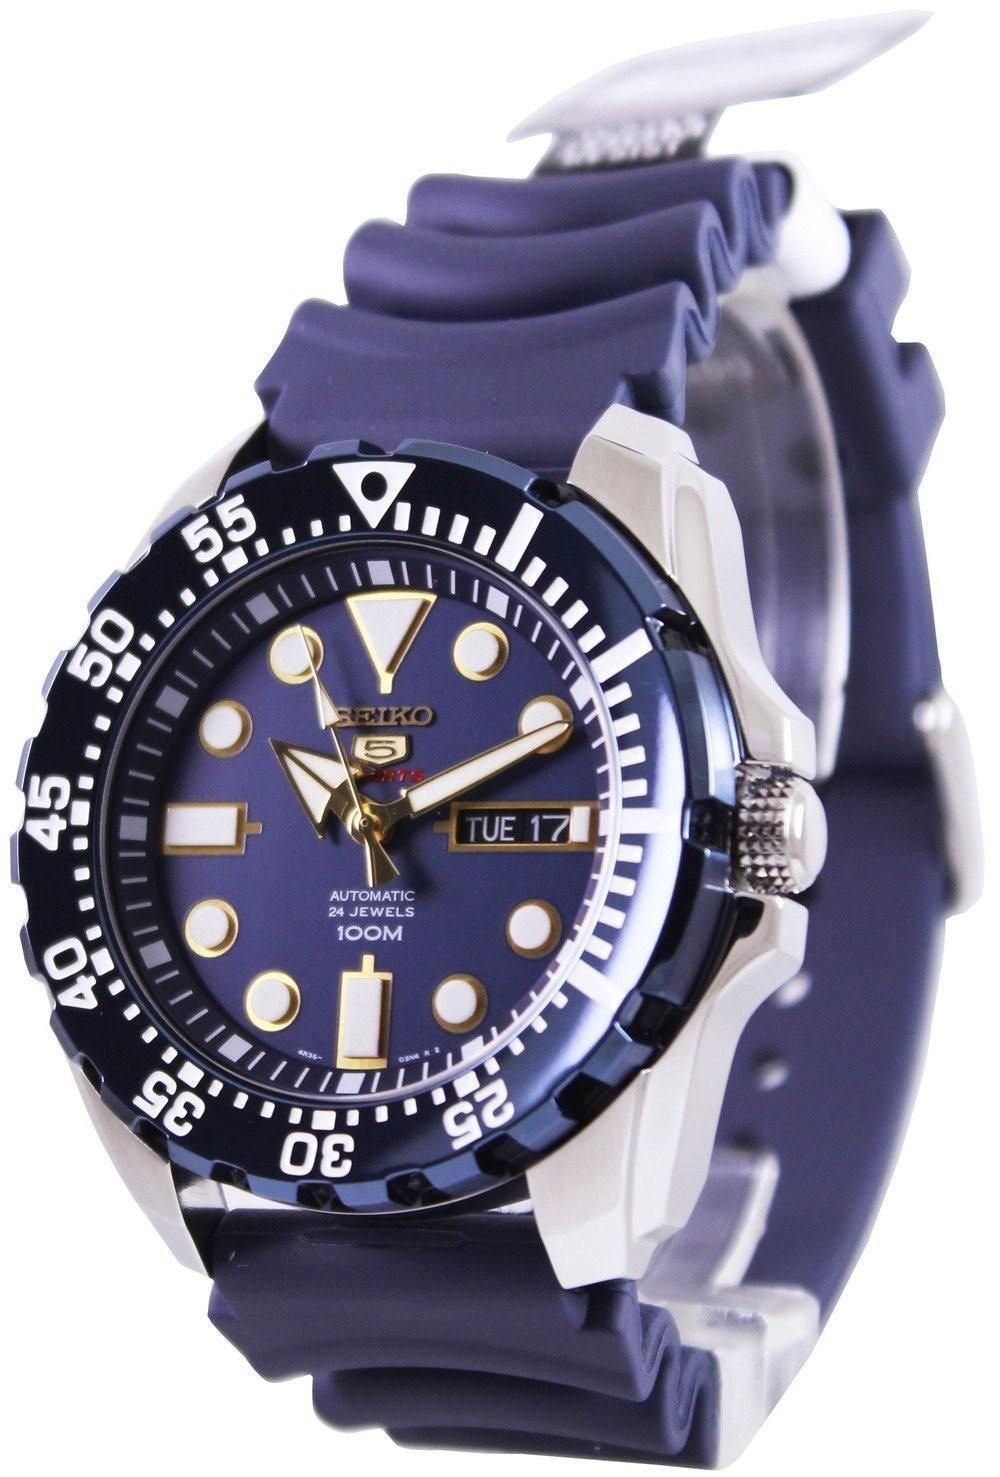 Seiko 5 Sports Automatic 24 Jewels SRP605K2 Mens Watch in